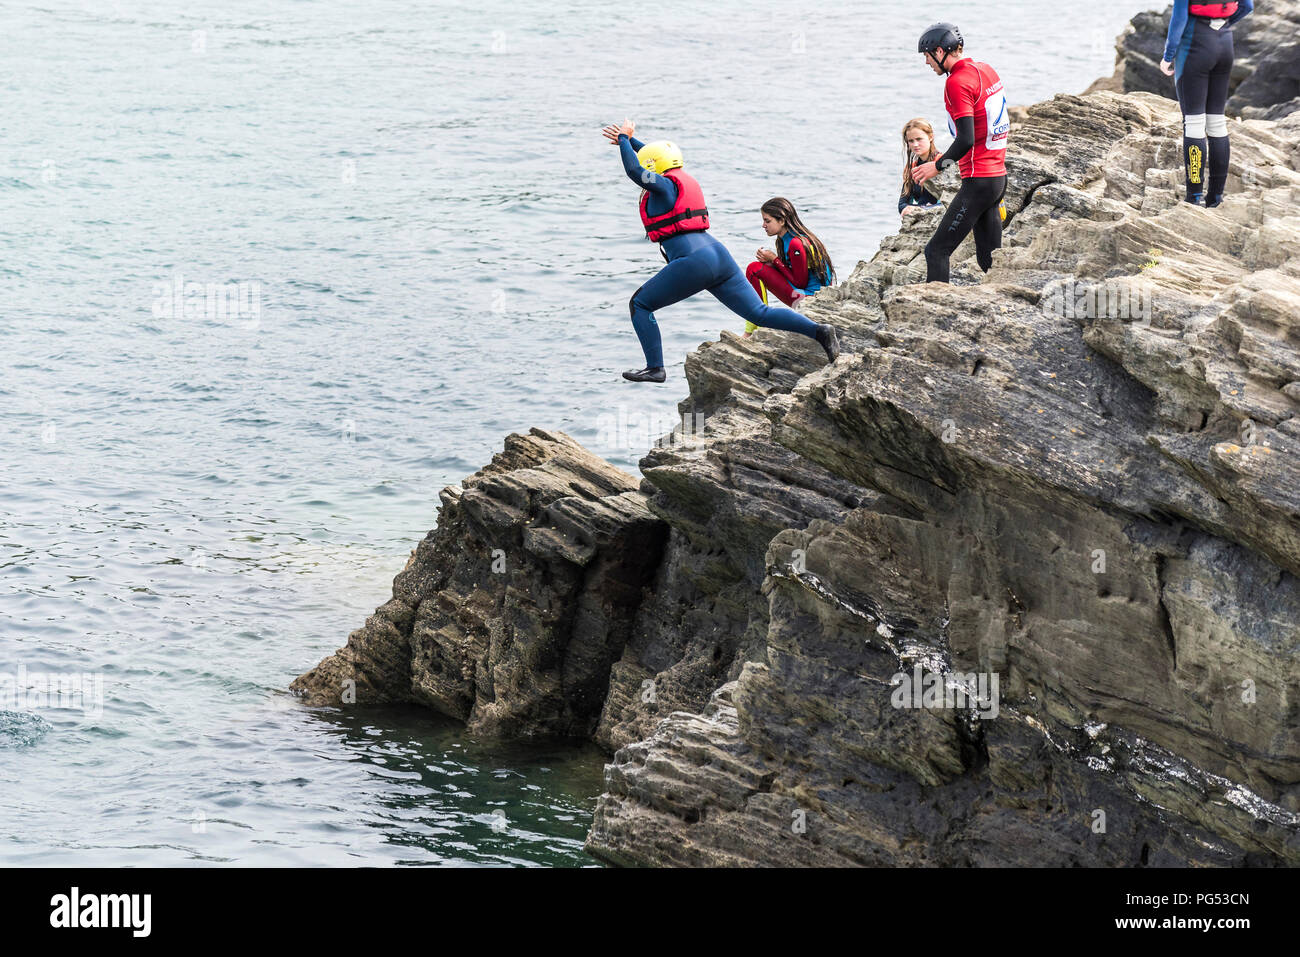 Holidaymakers coasteering on The Headland in Newquay, Cornwall. - Stock Image